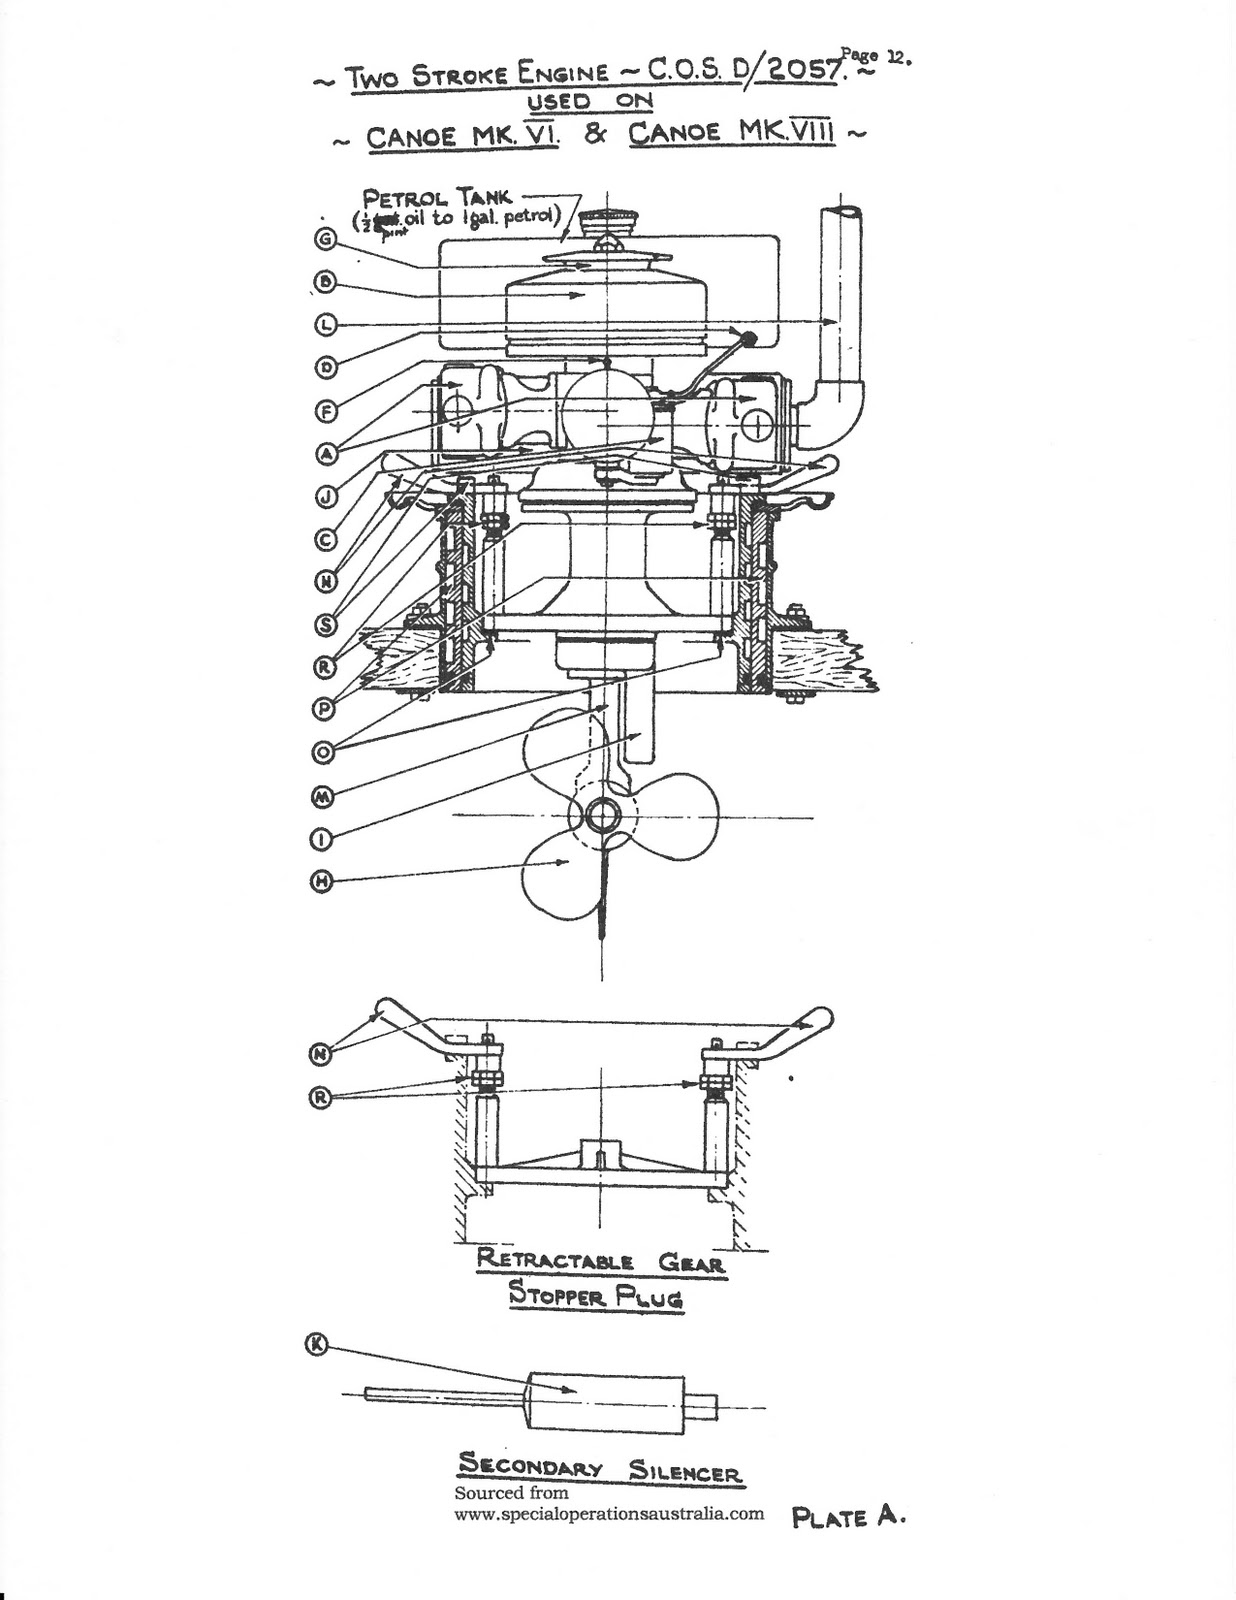 Arnhem Jim The War Canoes Of World Ii Cockleshell Heroes 2 Cycle Engine Diagram Engineering Drawing Detailing Retractable Two Stroke Gasoline Installed In Canoe Mk Vi And Viii